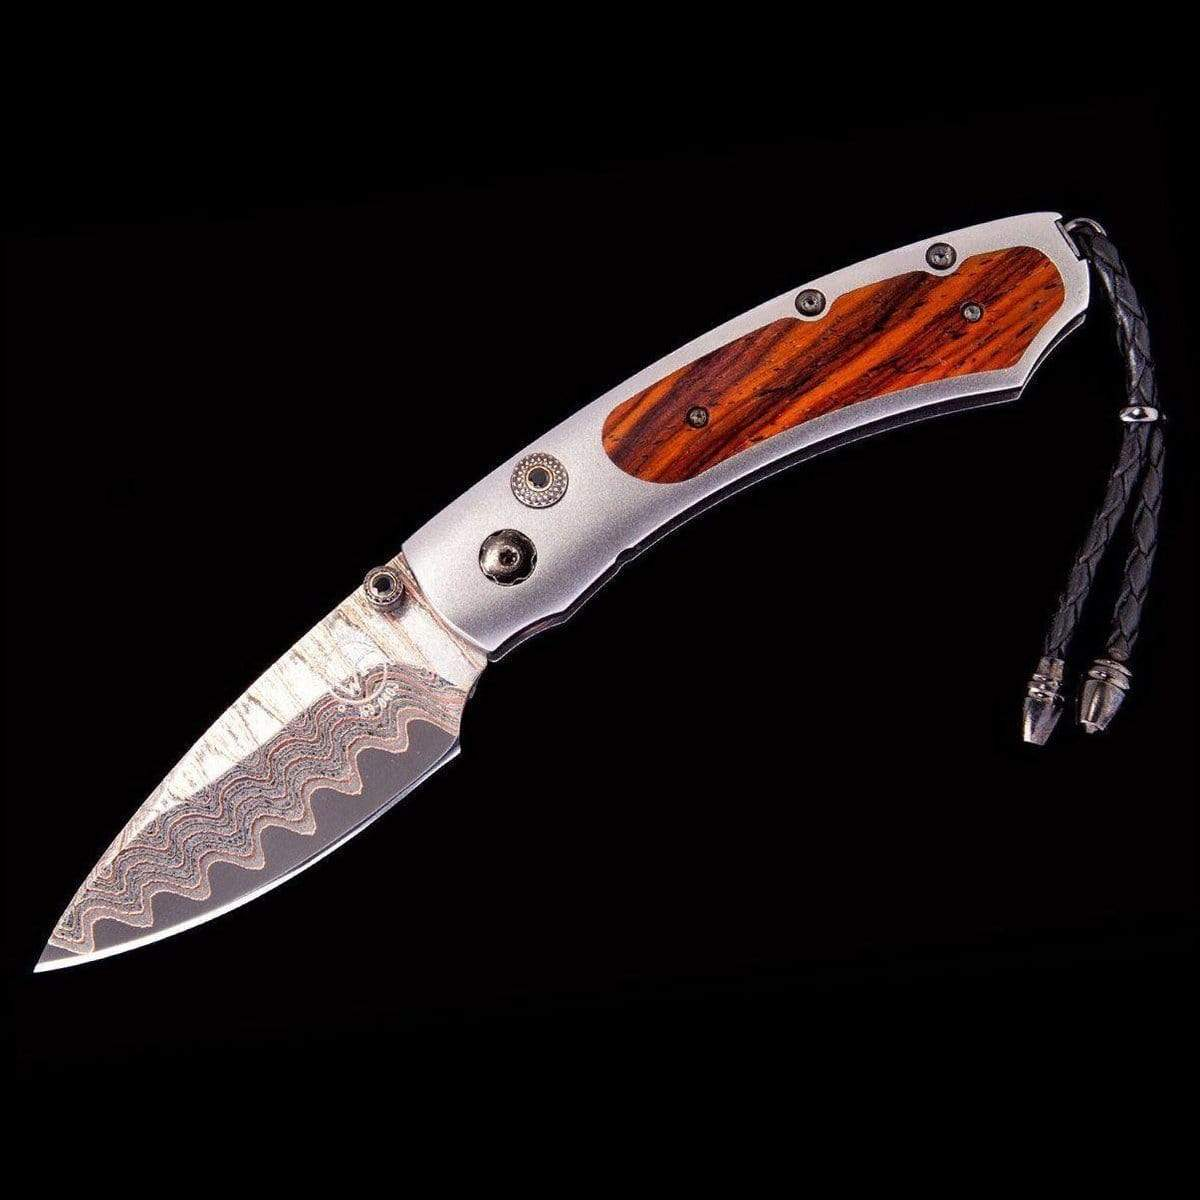 Kestrel Copper River Limited Edition Knife - B09 COPPER RIVER-William Henry-Renee Taylor Gallery